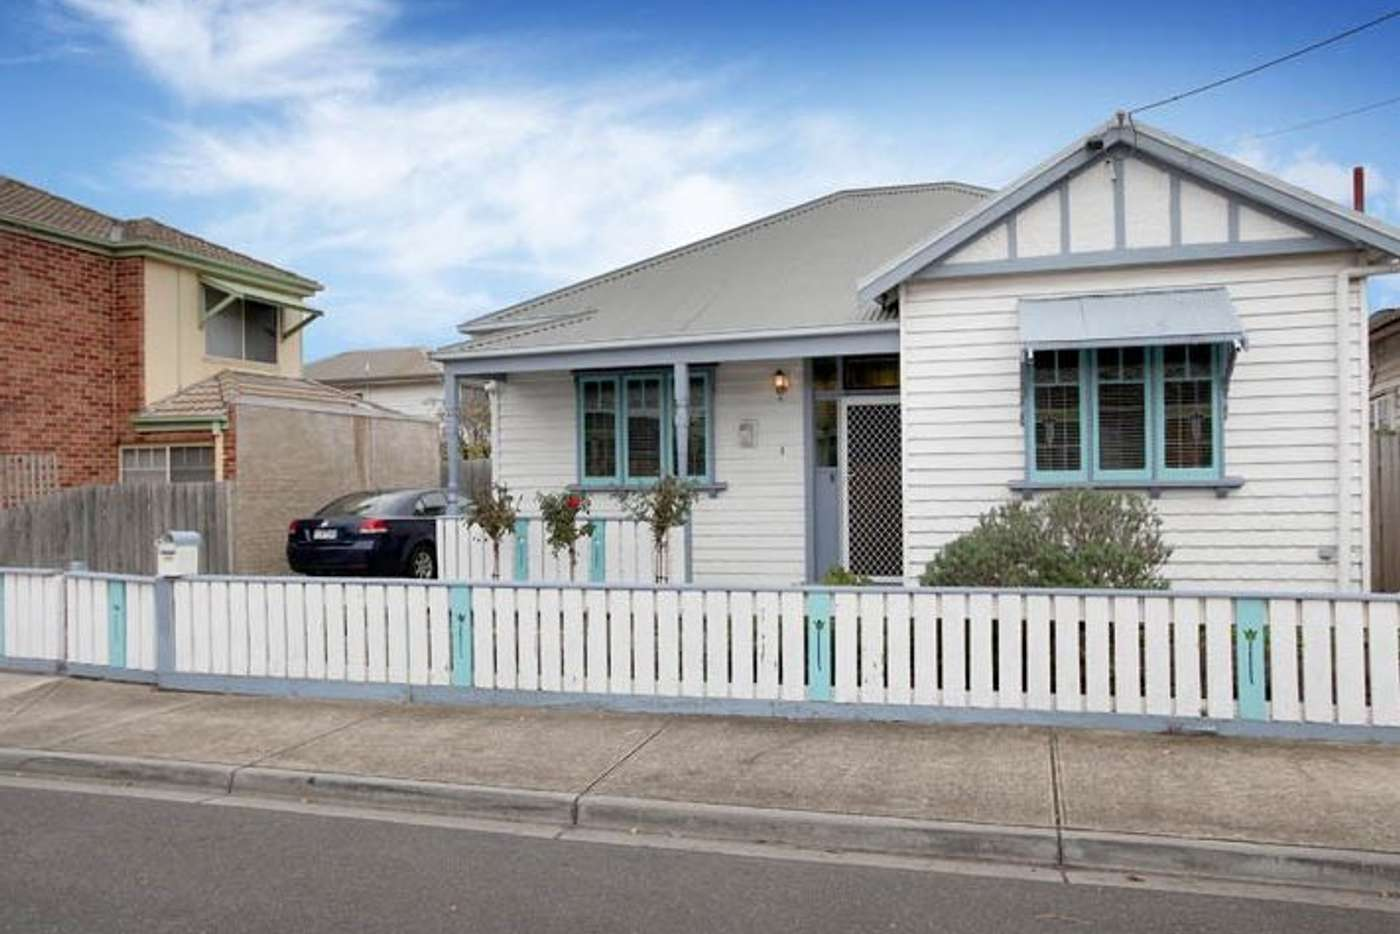 Main view of Homely house listing, 1 Dove Street, West Footscray VIC 3012